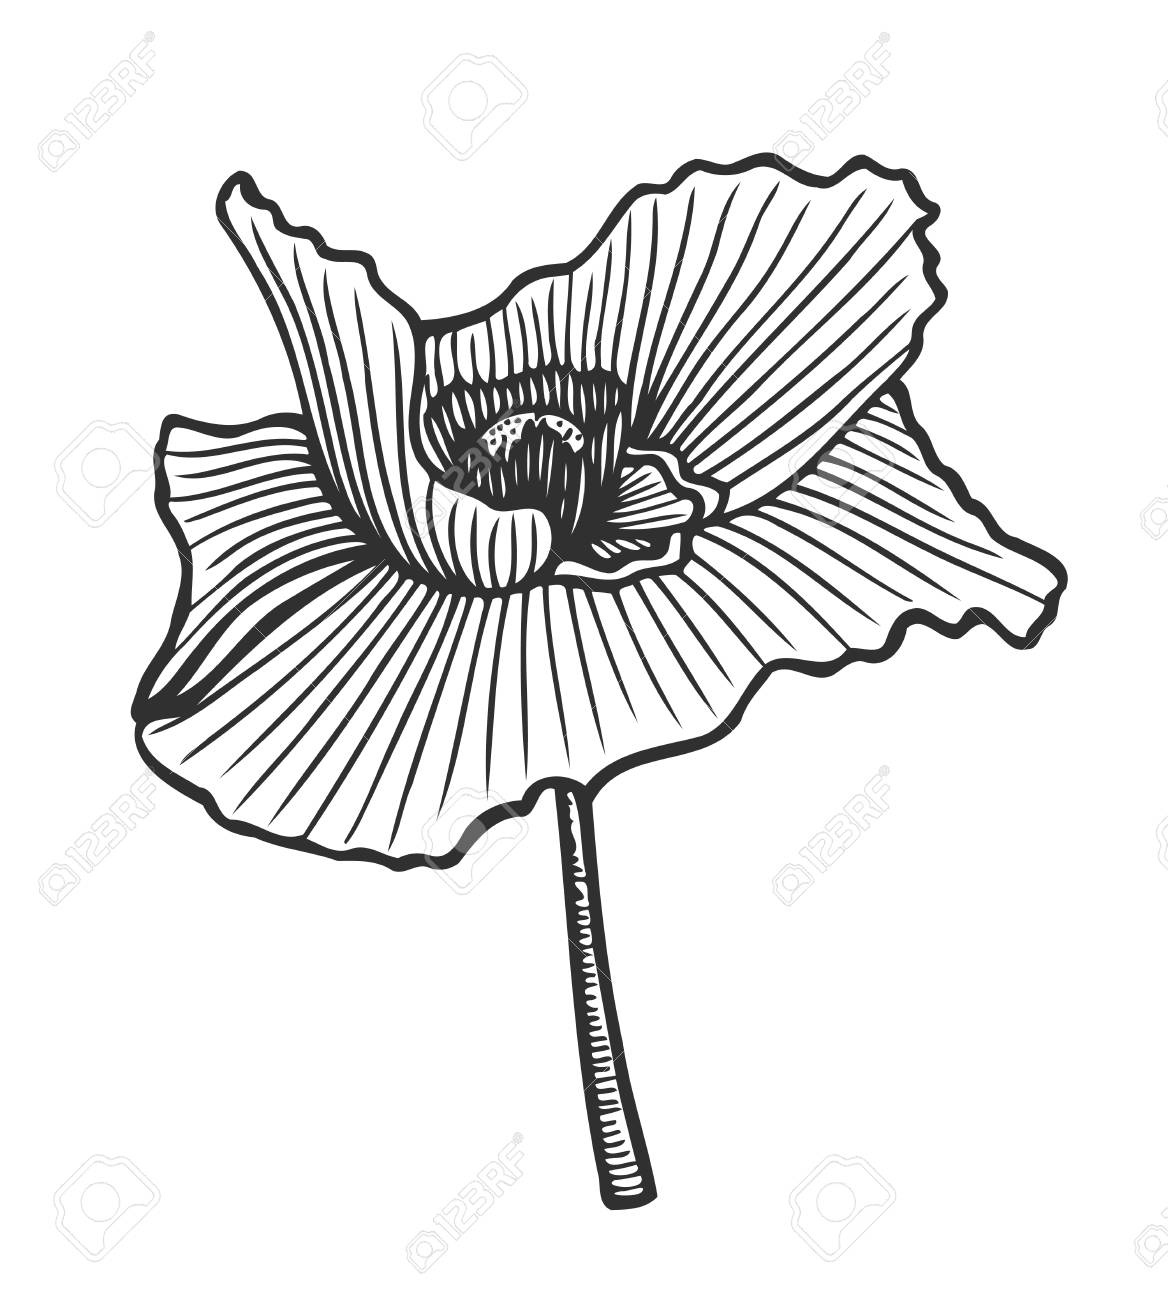 Hand drawn floral engraving poppy flower on white background. - 90693344